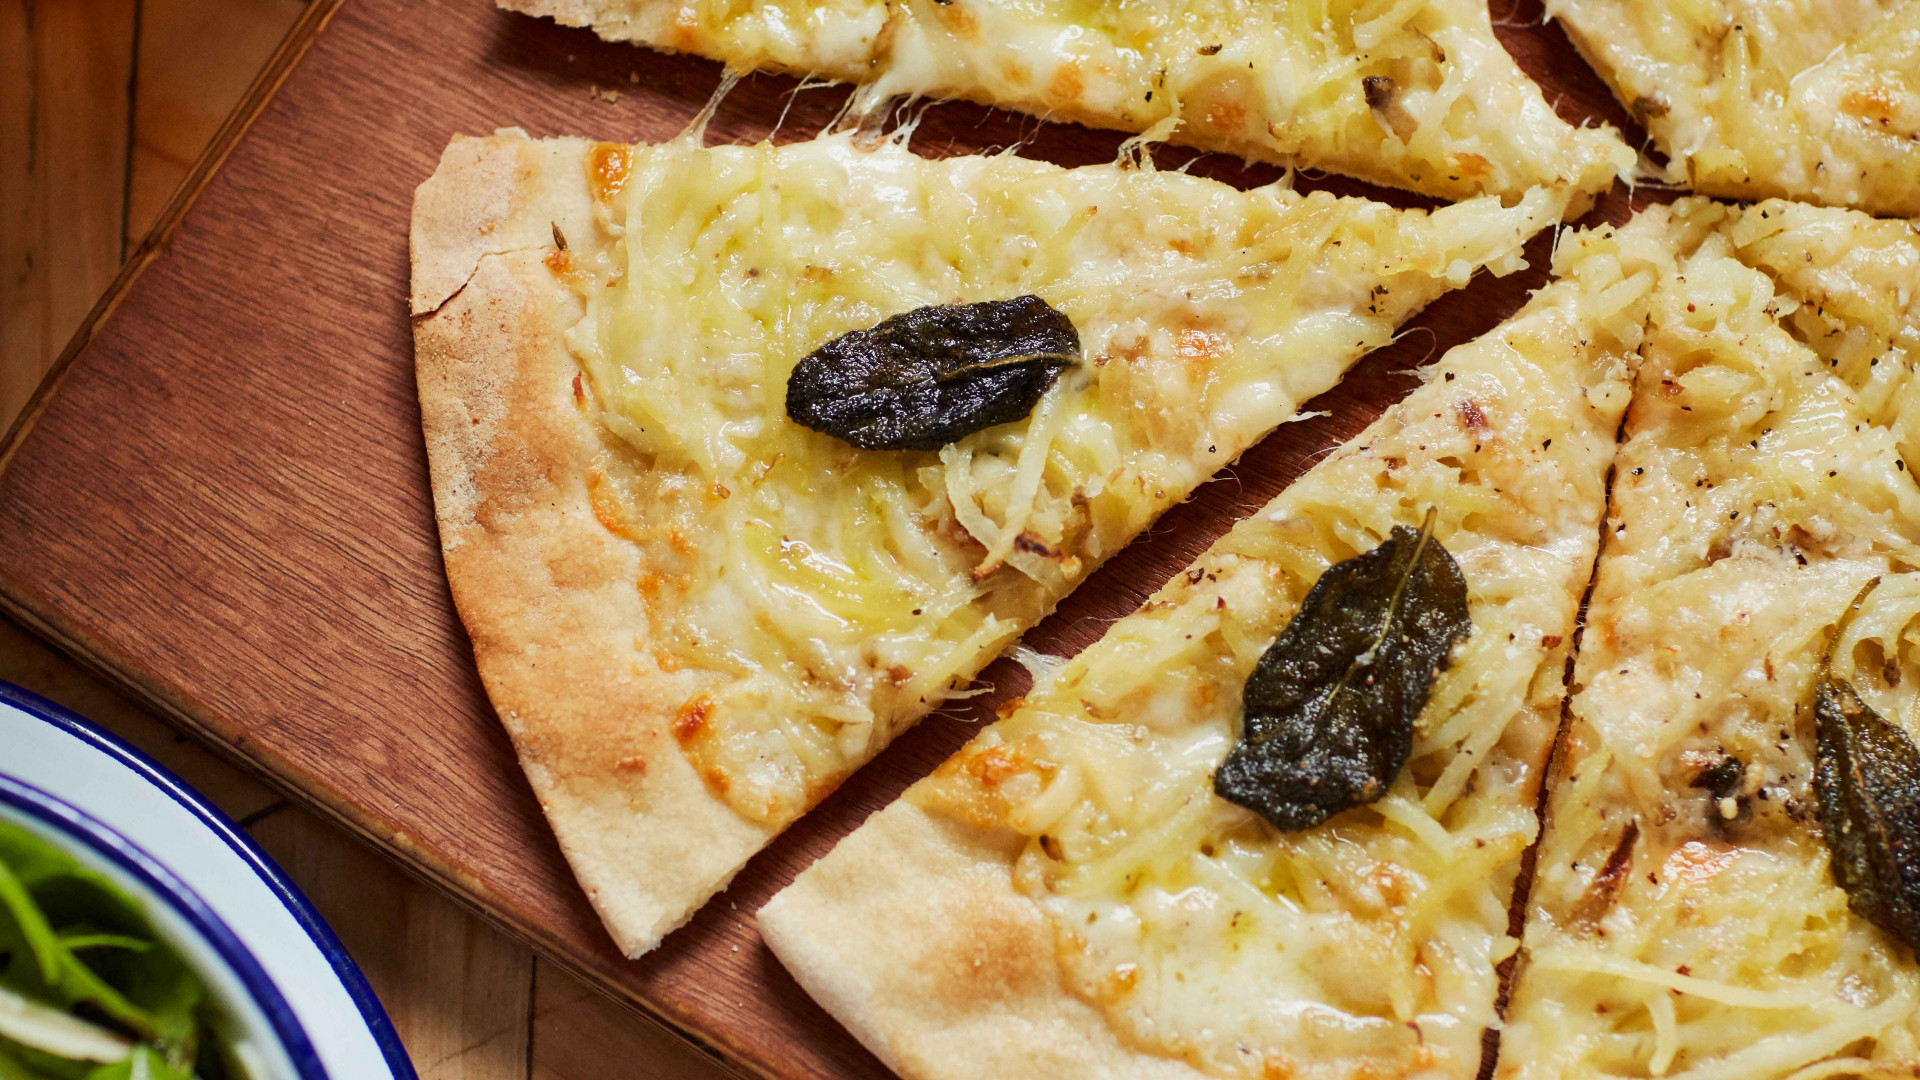 Crate's sage and truffle pizza